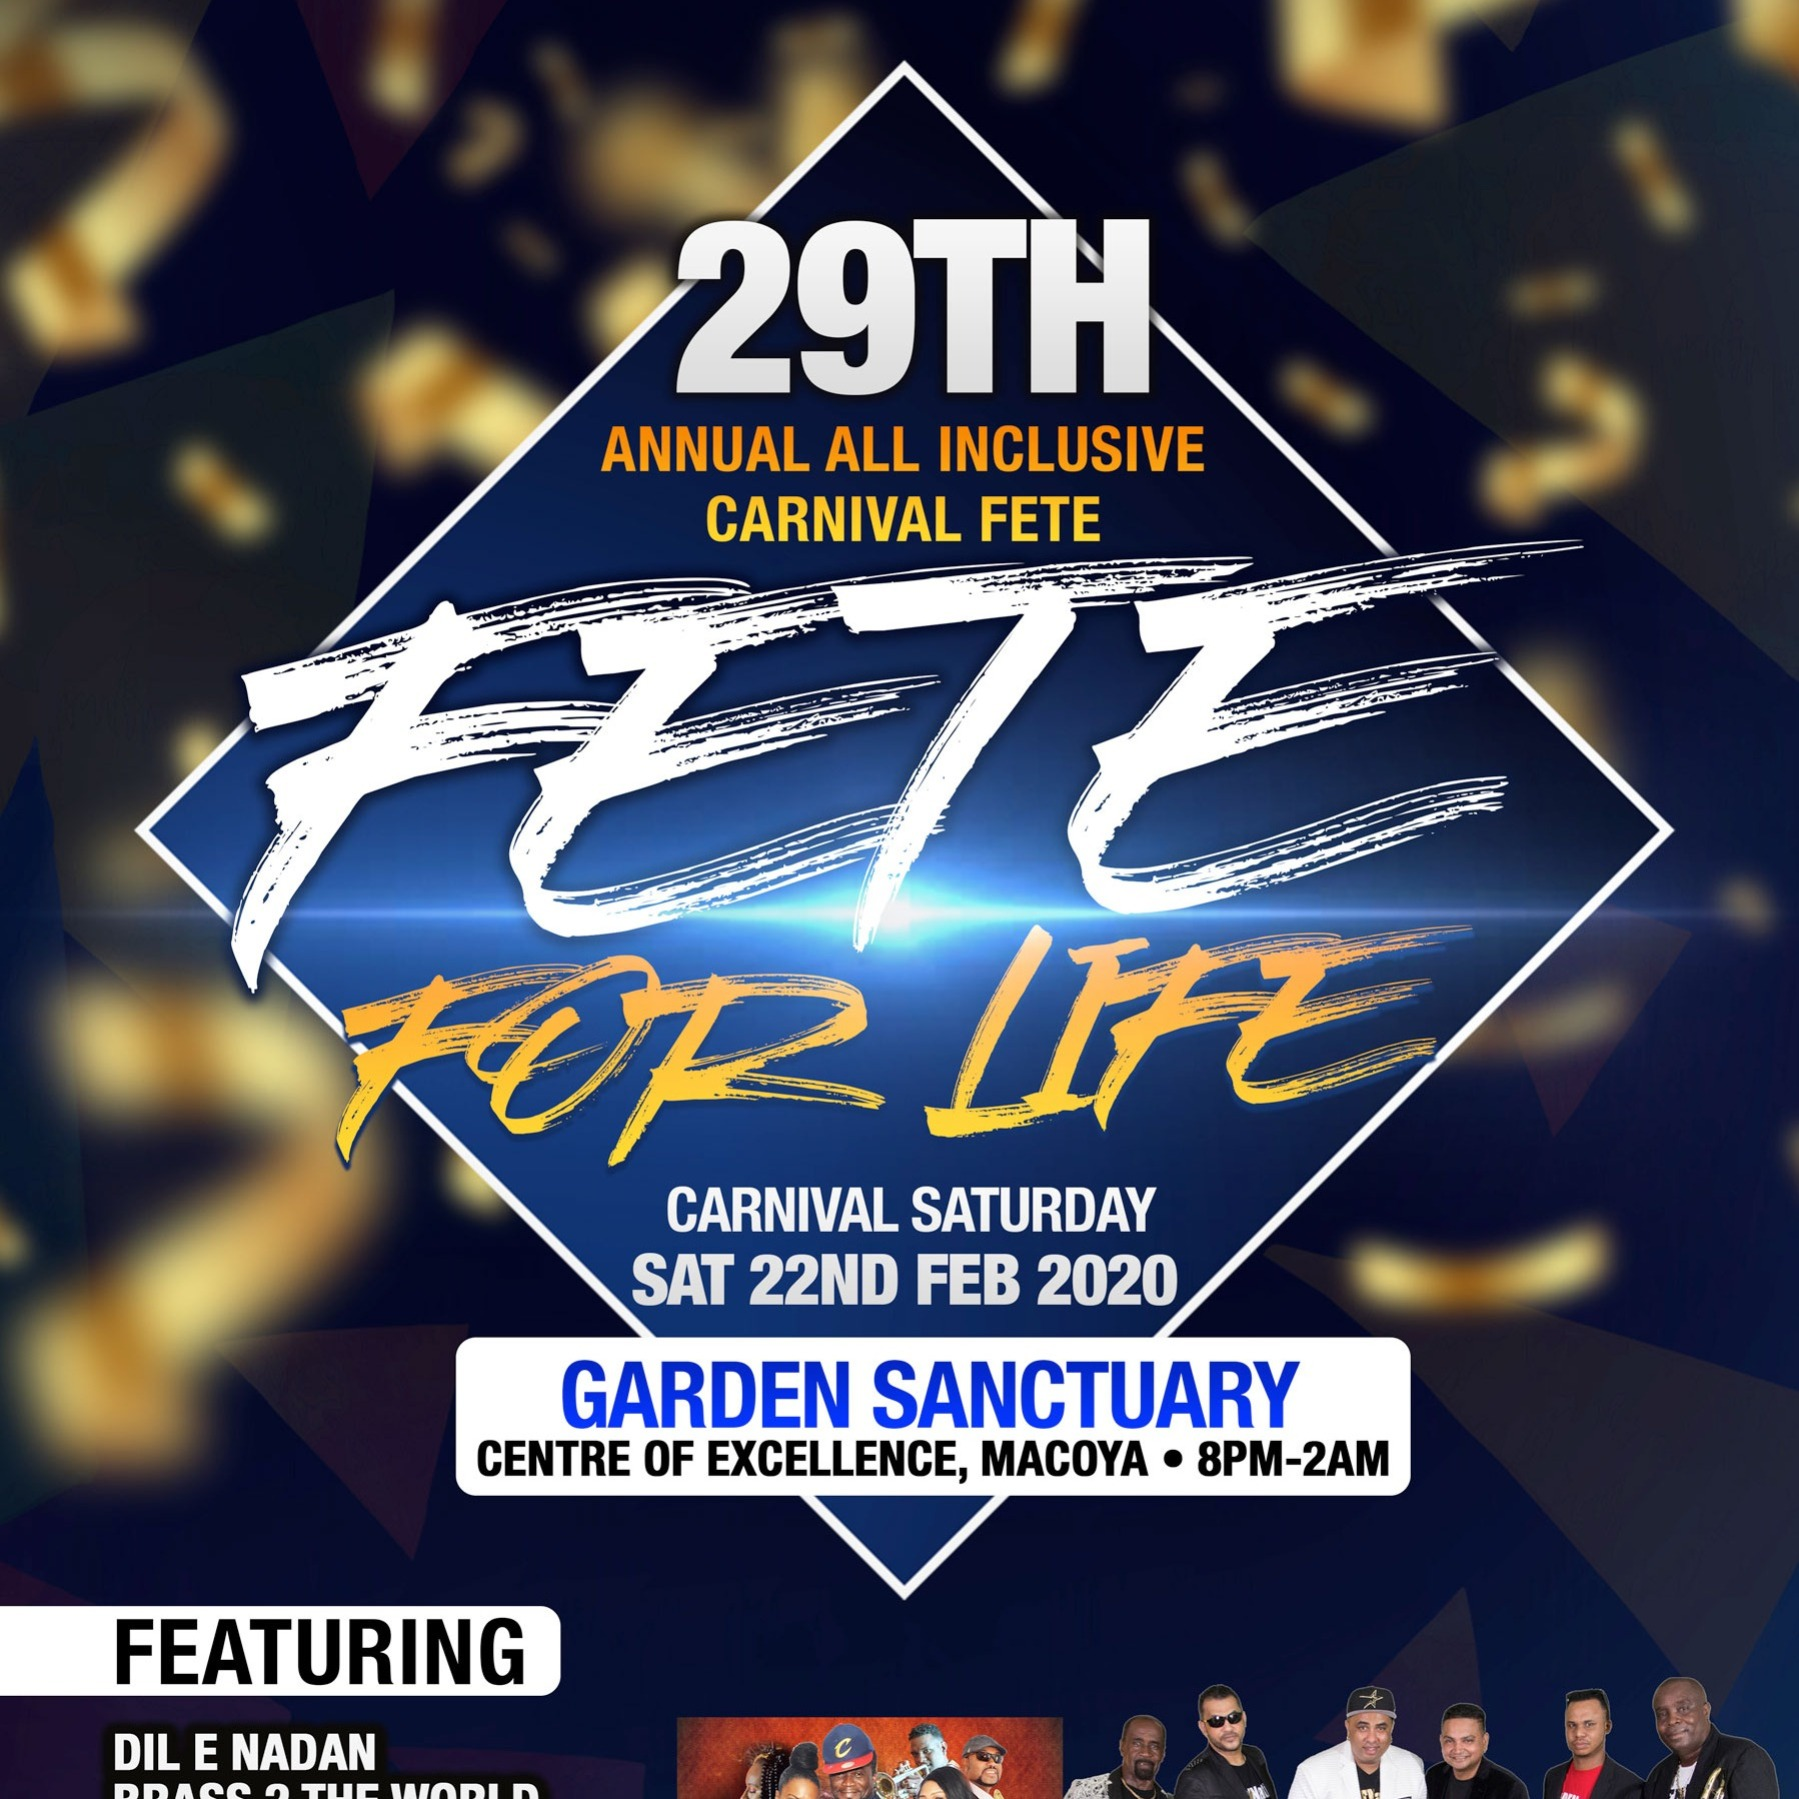 Fete For Life - Carnival Saturday